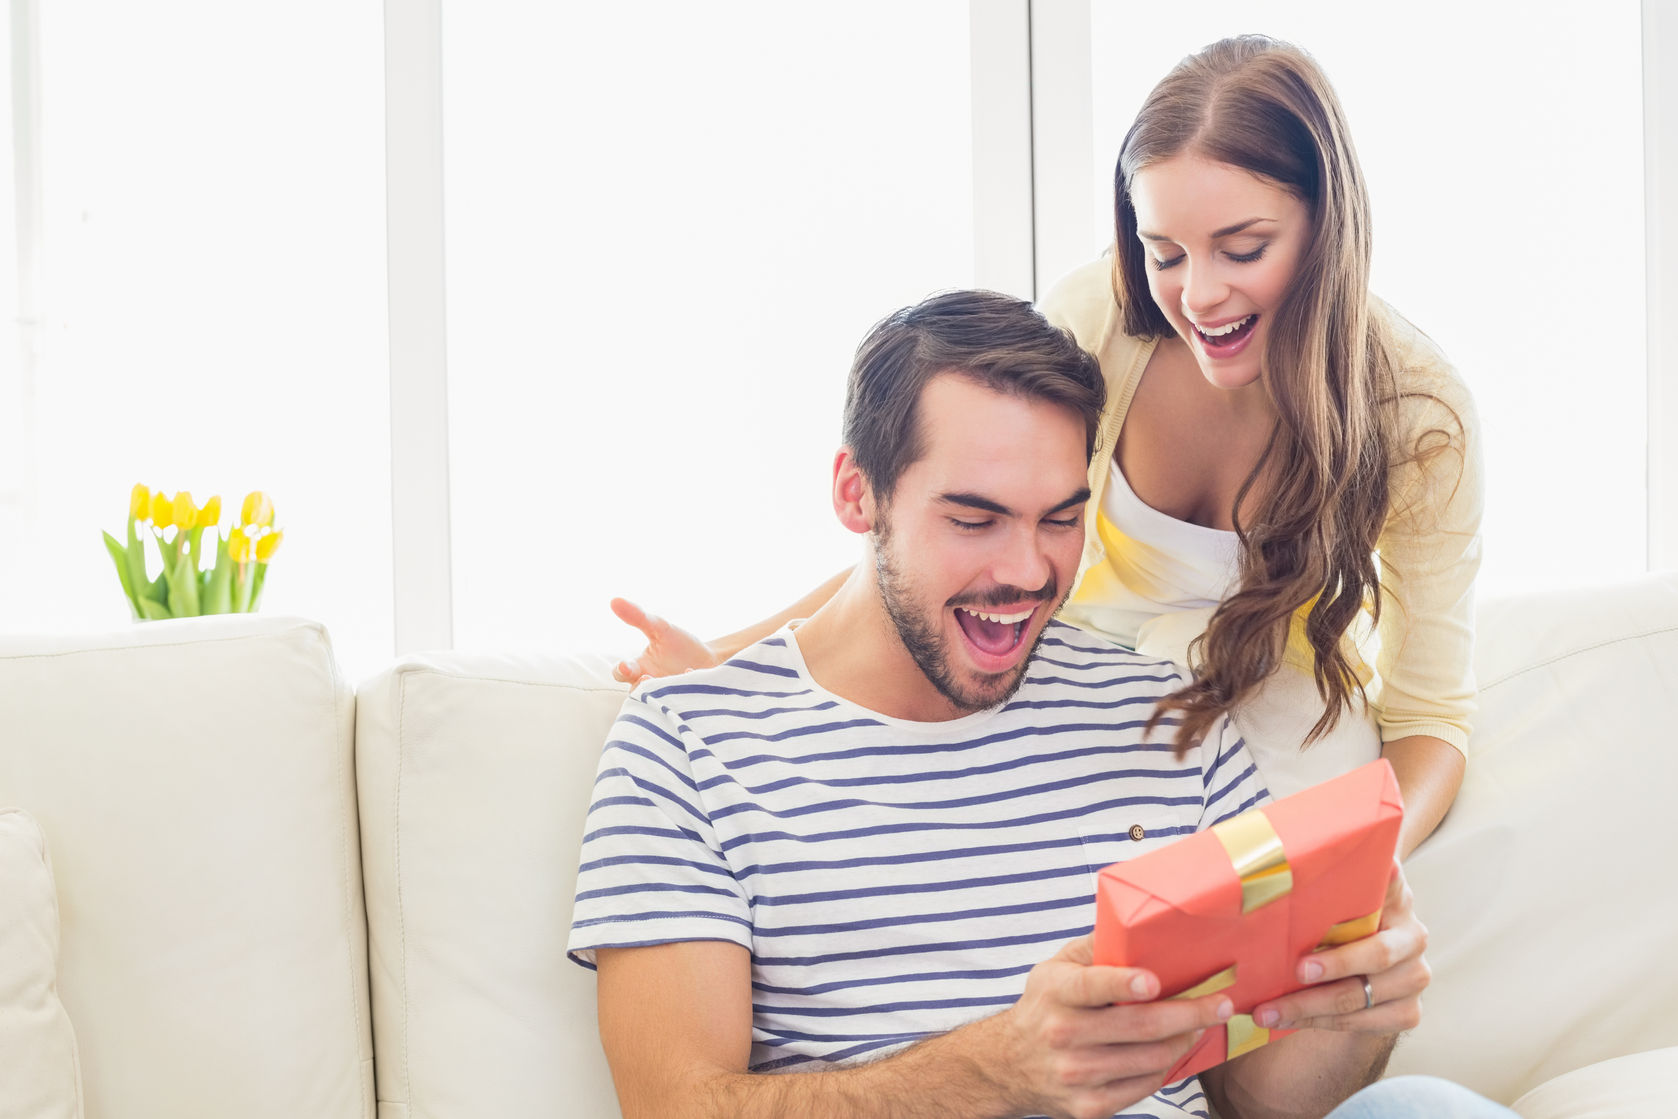 woman surprising her boyfriend with gift at home in the living room